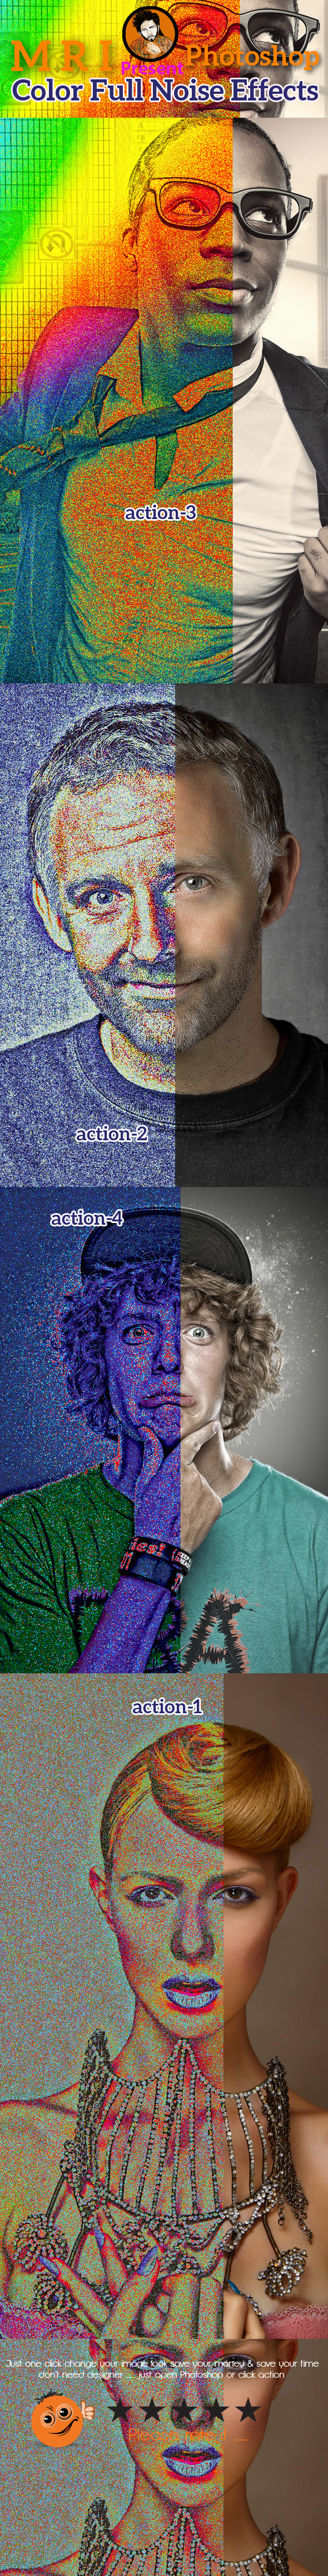 Color Full Noise Effects Action - Photo Effects Actions